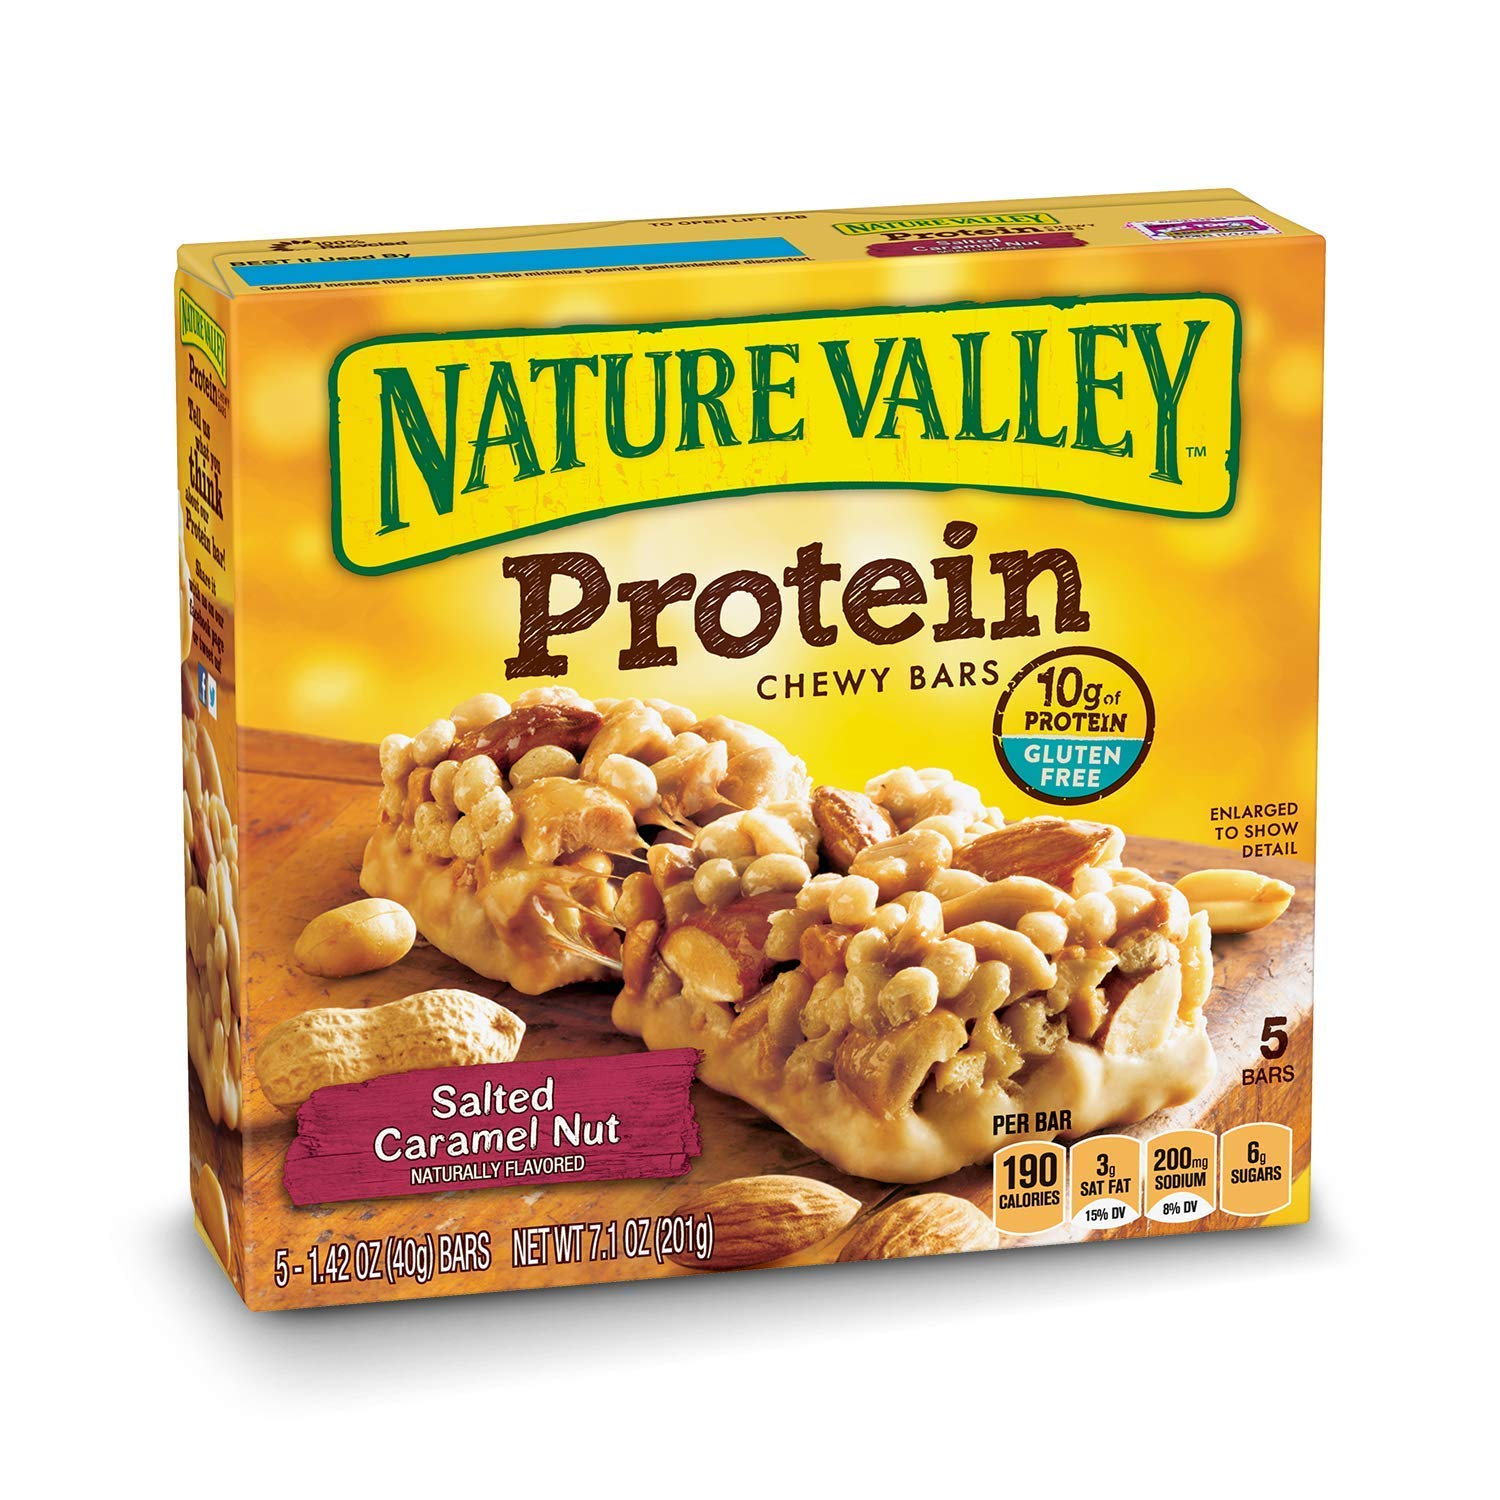 Nature Valley Protein Chewy Bars